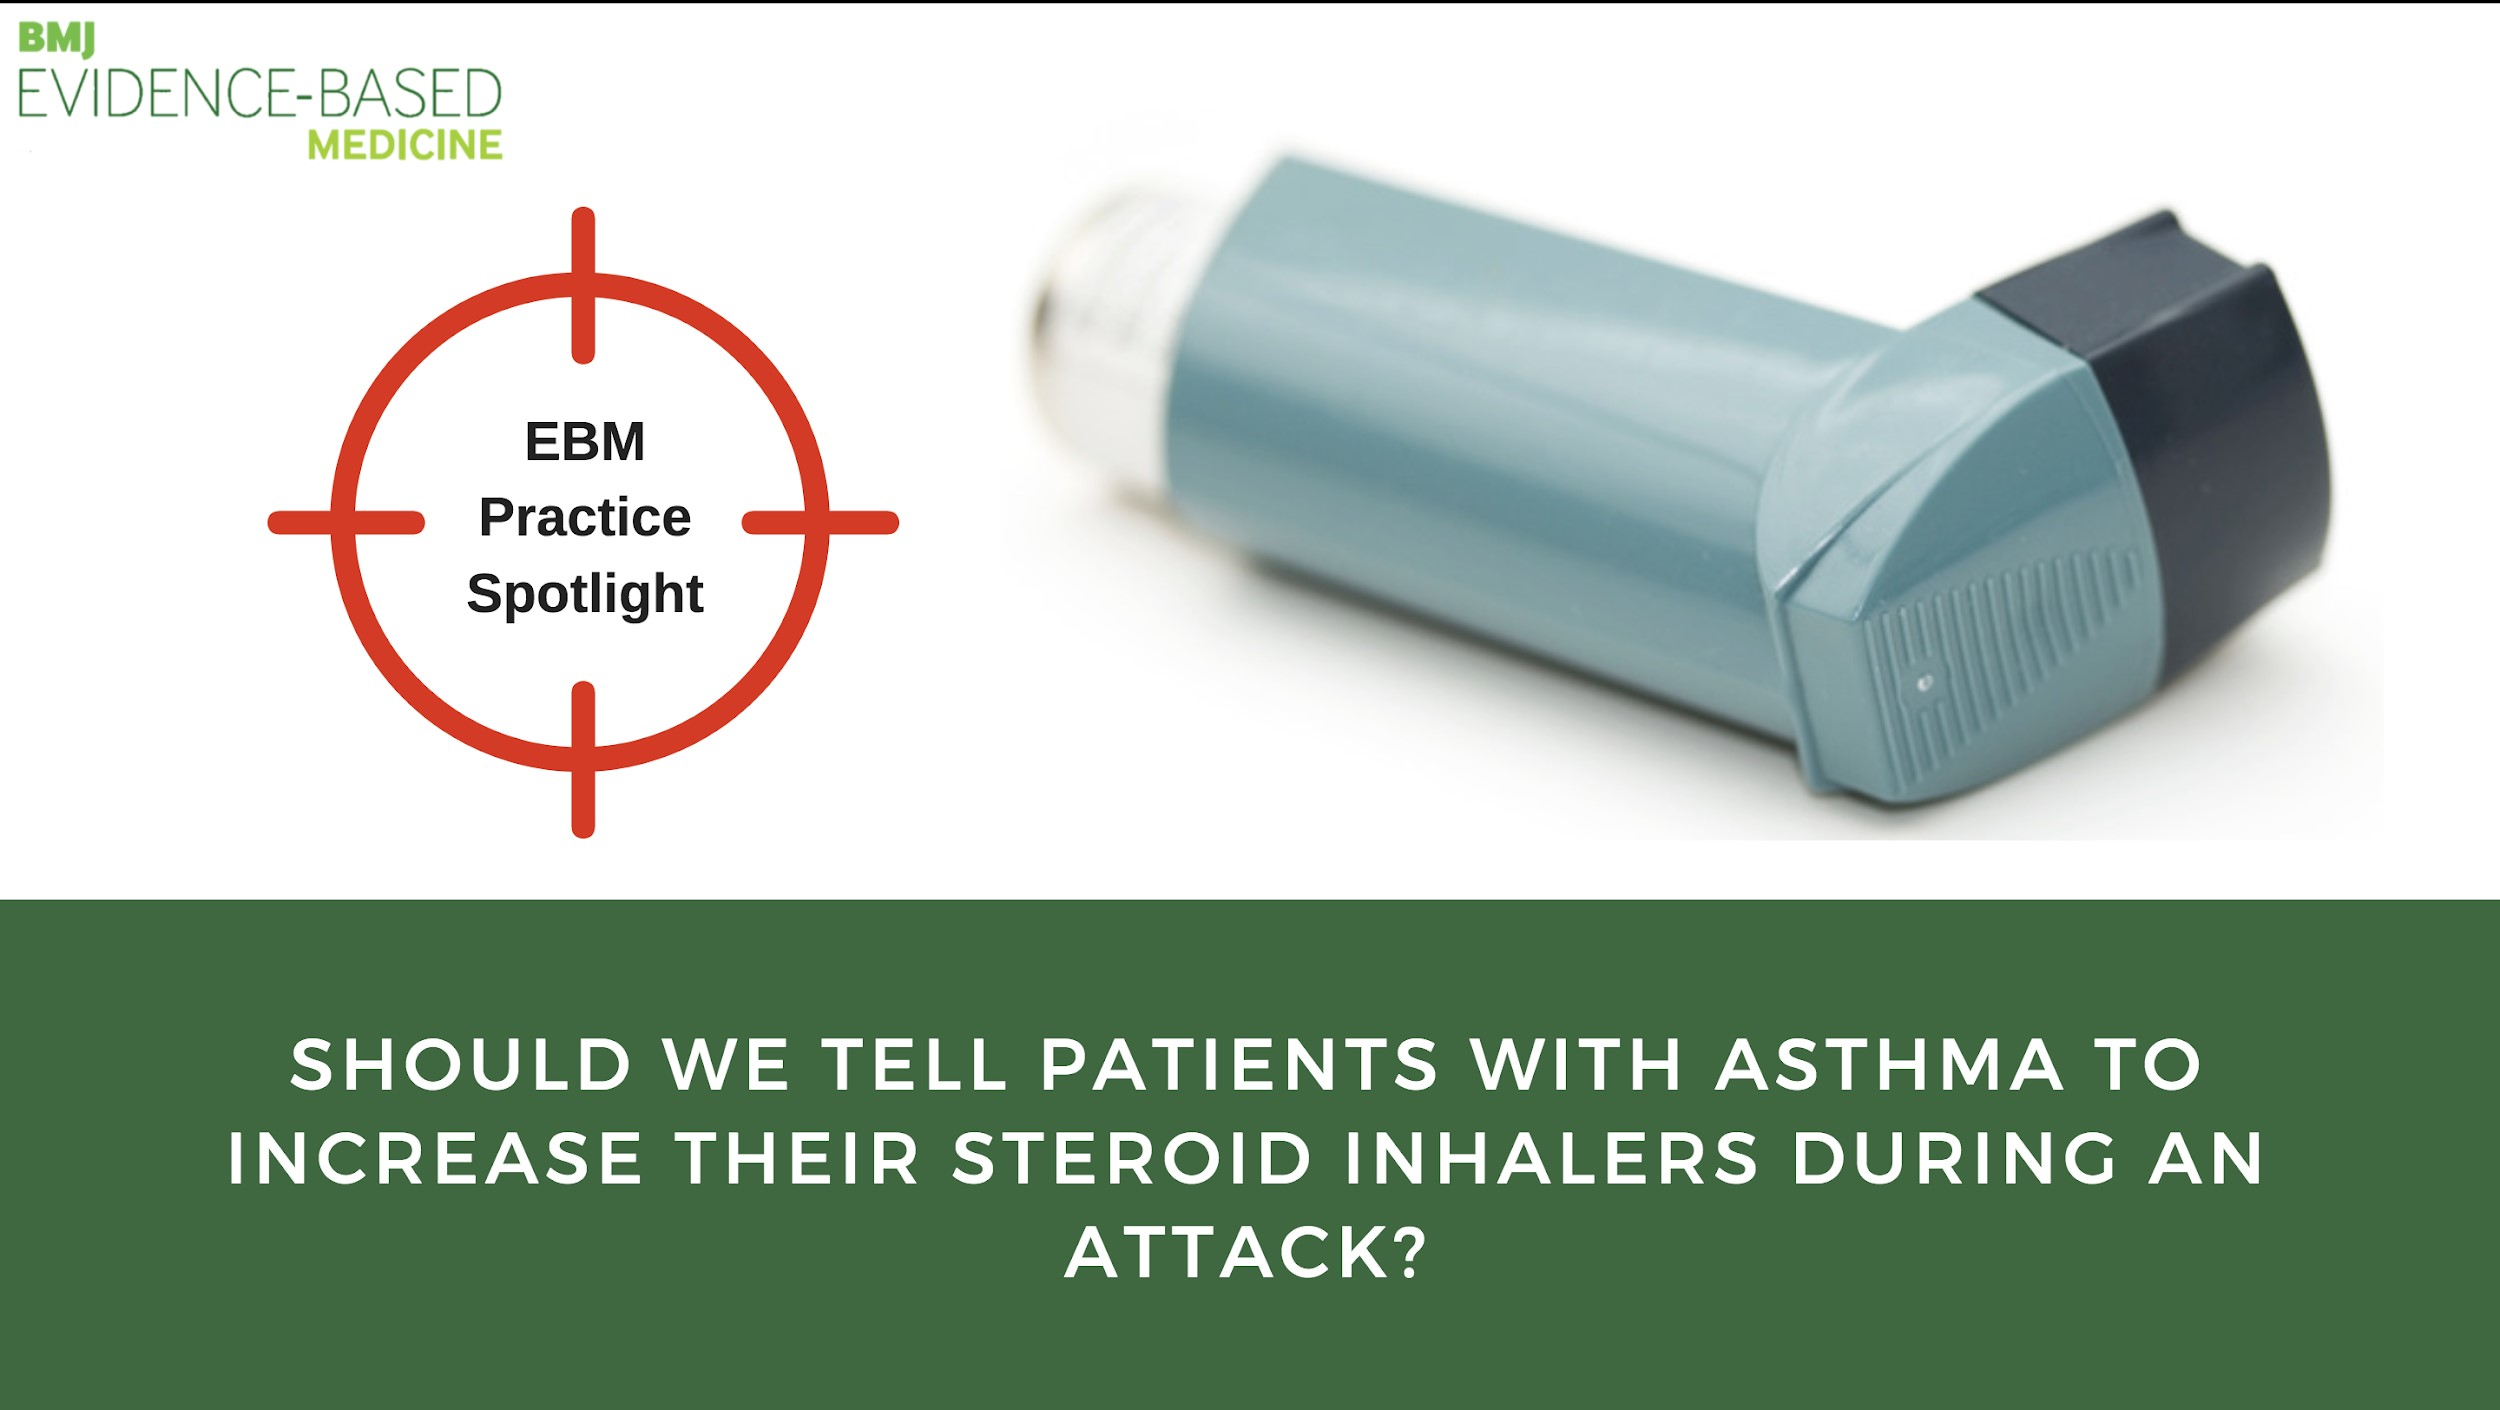 What to do during an asthma attack no inhaler-8810